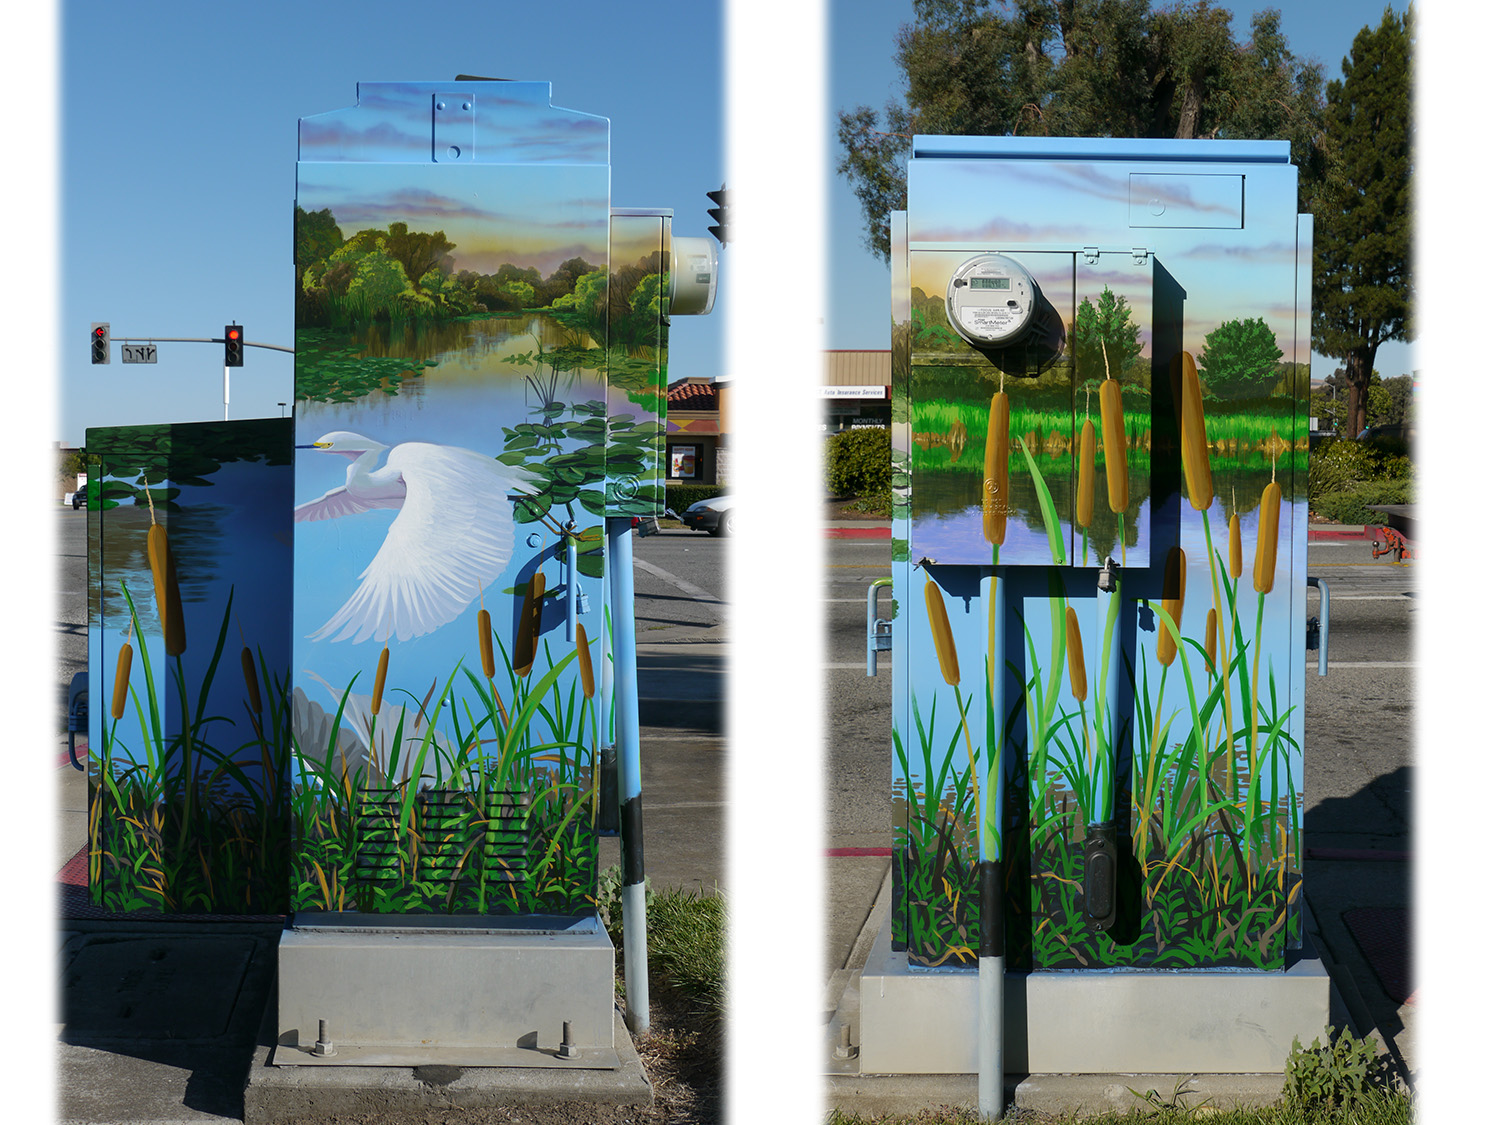 This large box has an ecology theme, featuring the beautiful wetlands found in the area near Gilroy.